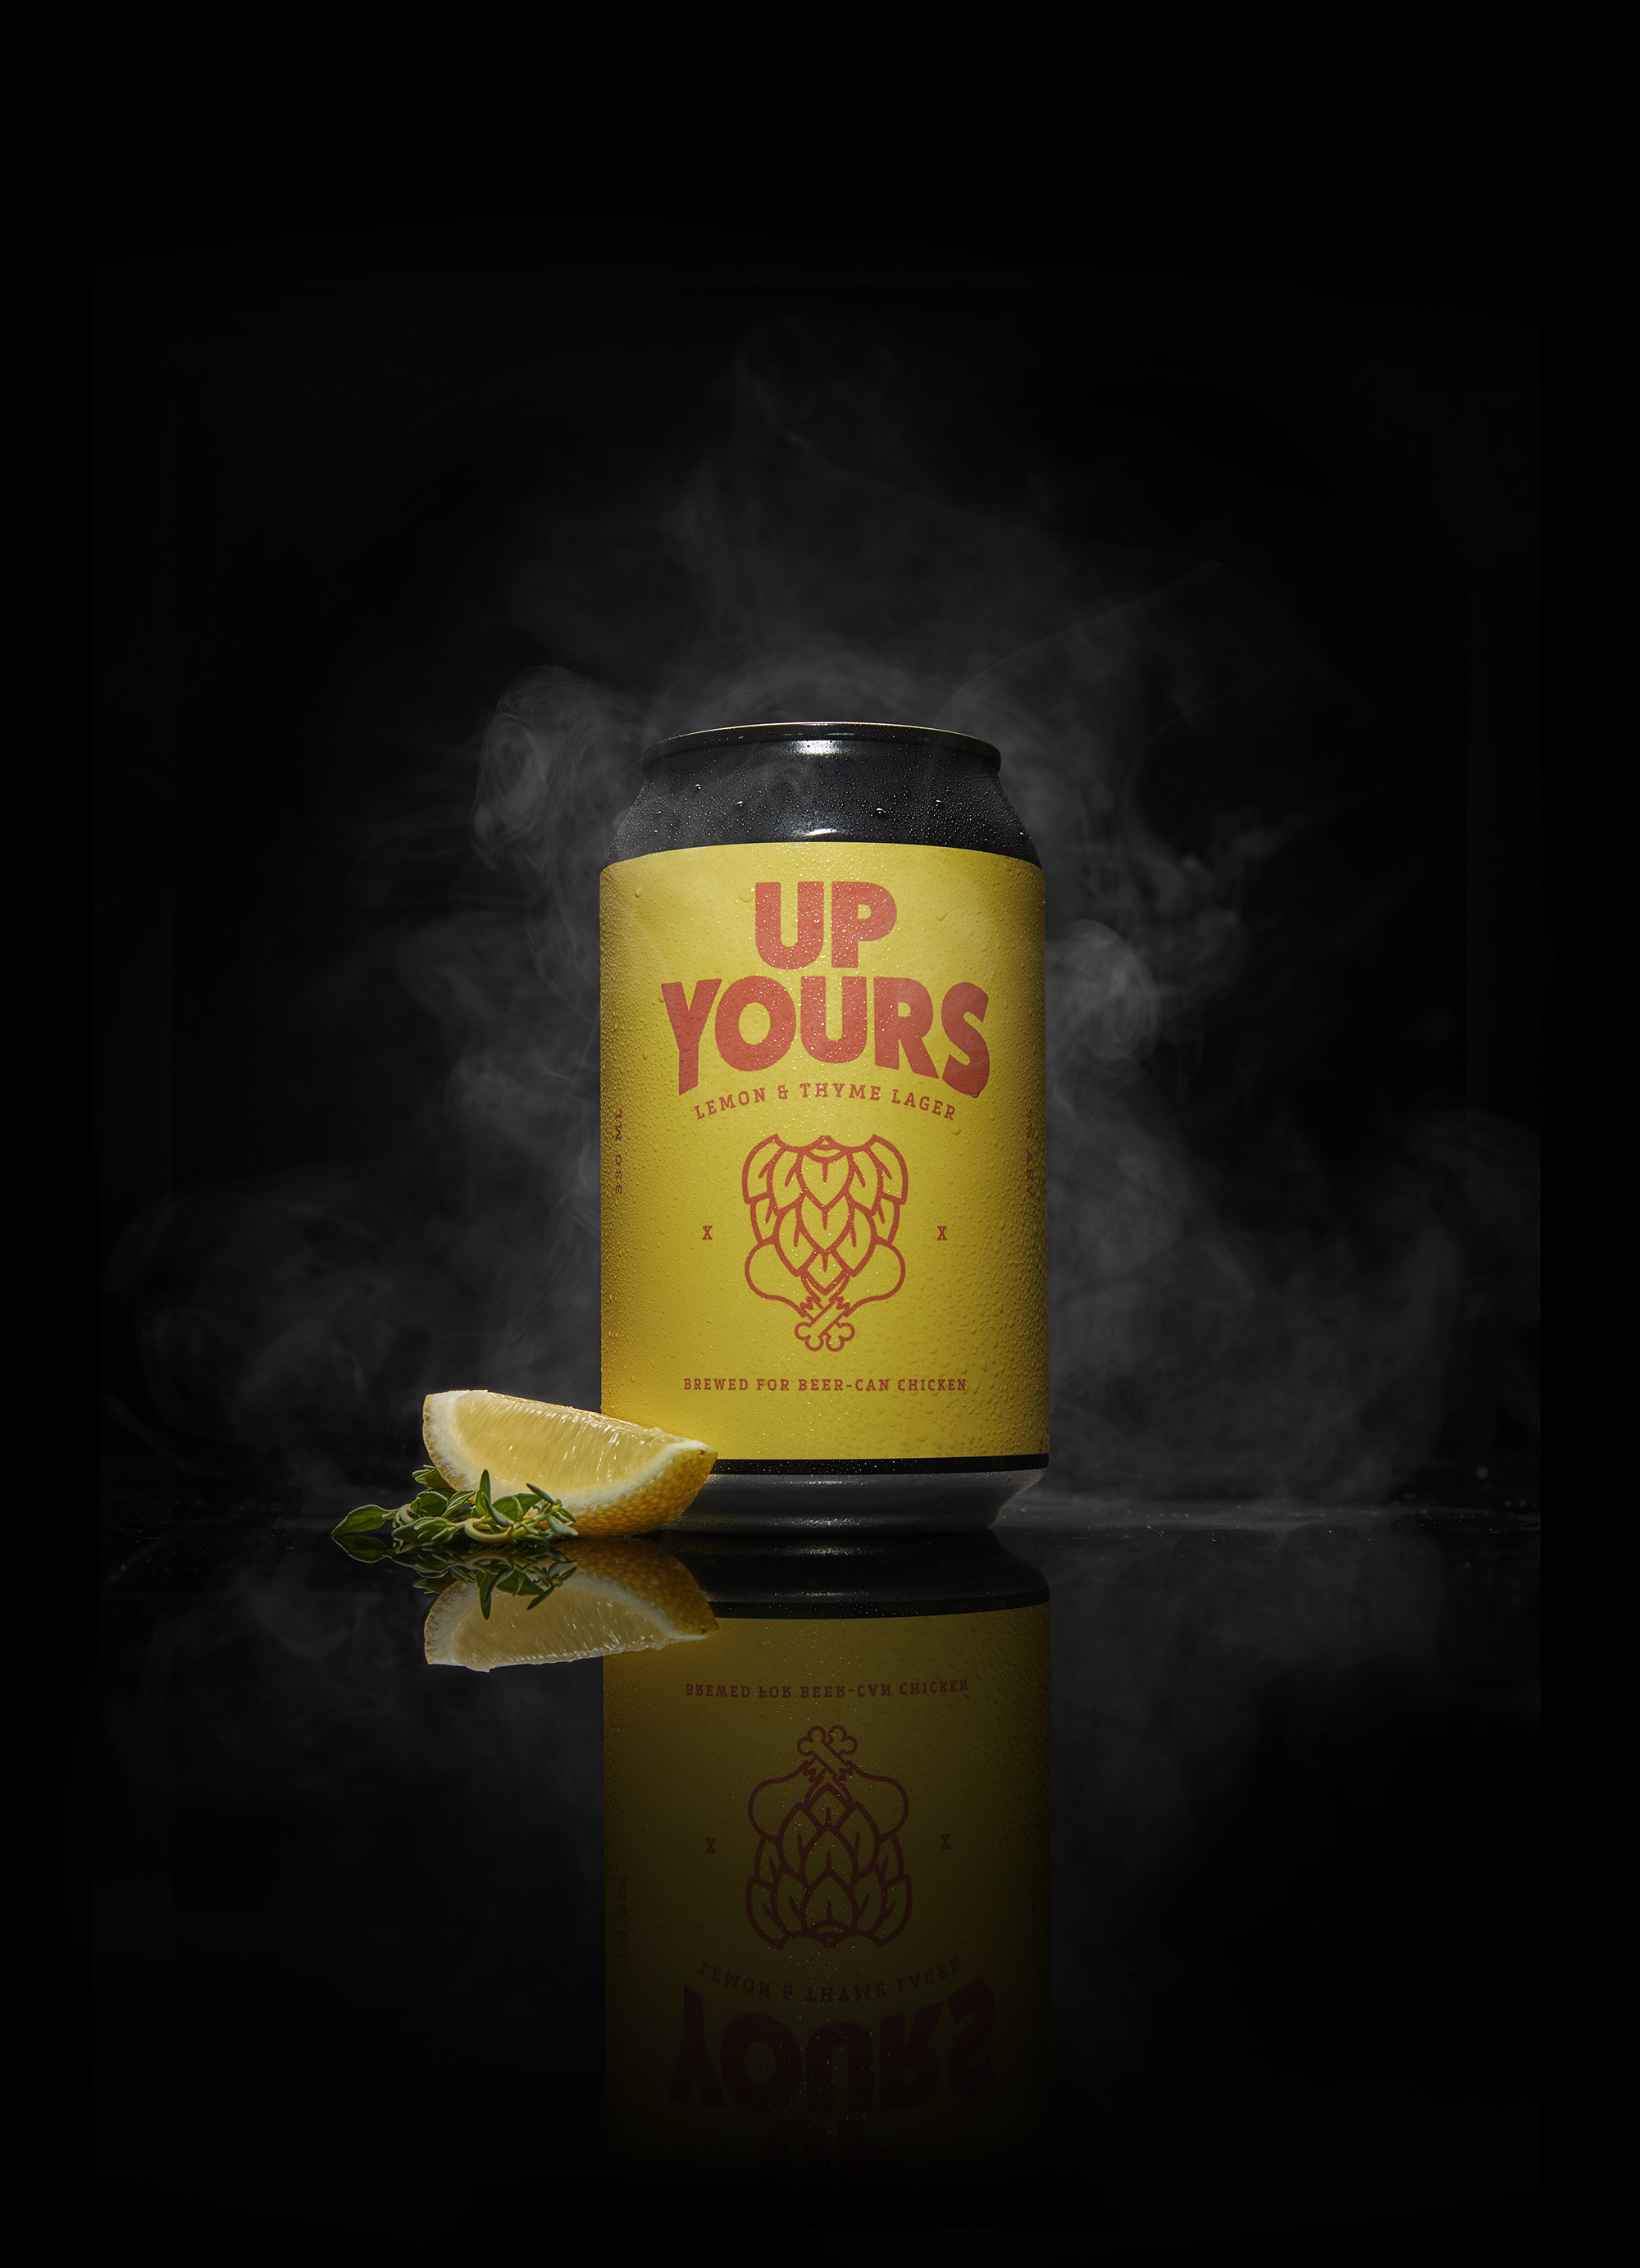 BC&F Dentsu launches Up Yours! ~ the first beer brewed for beer-can chicken